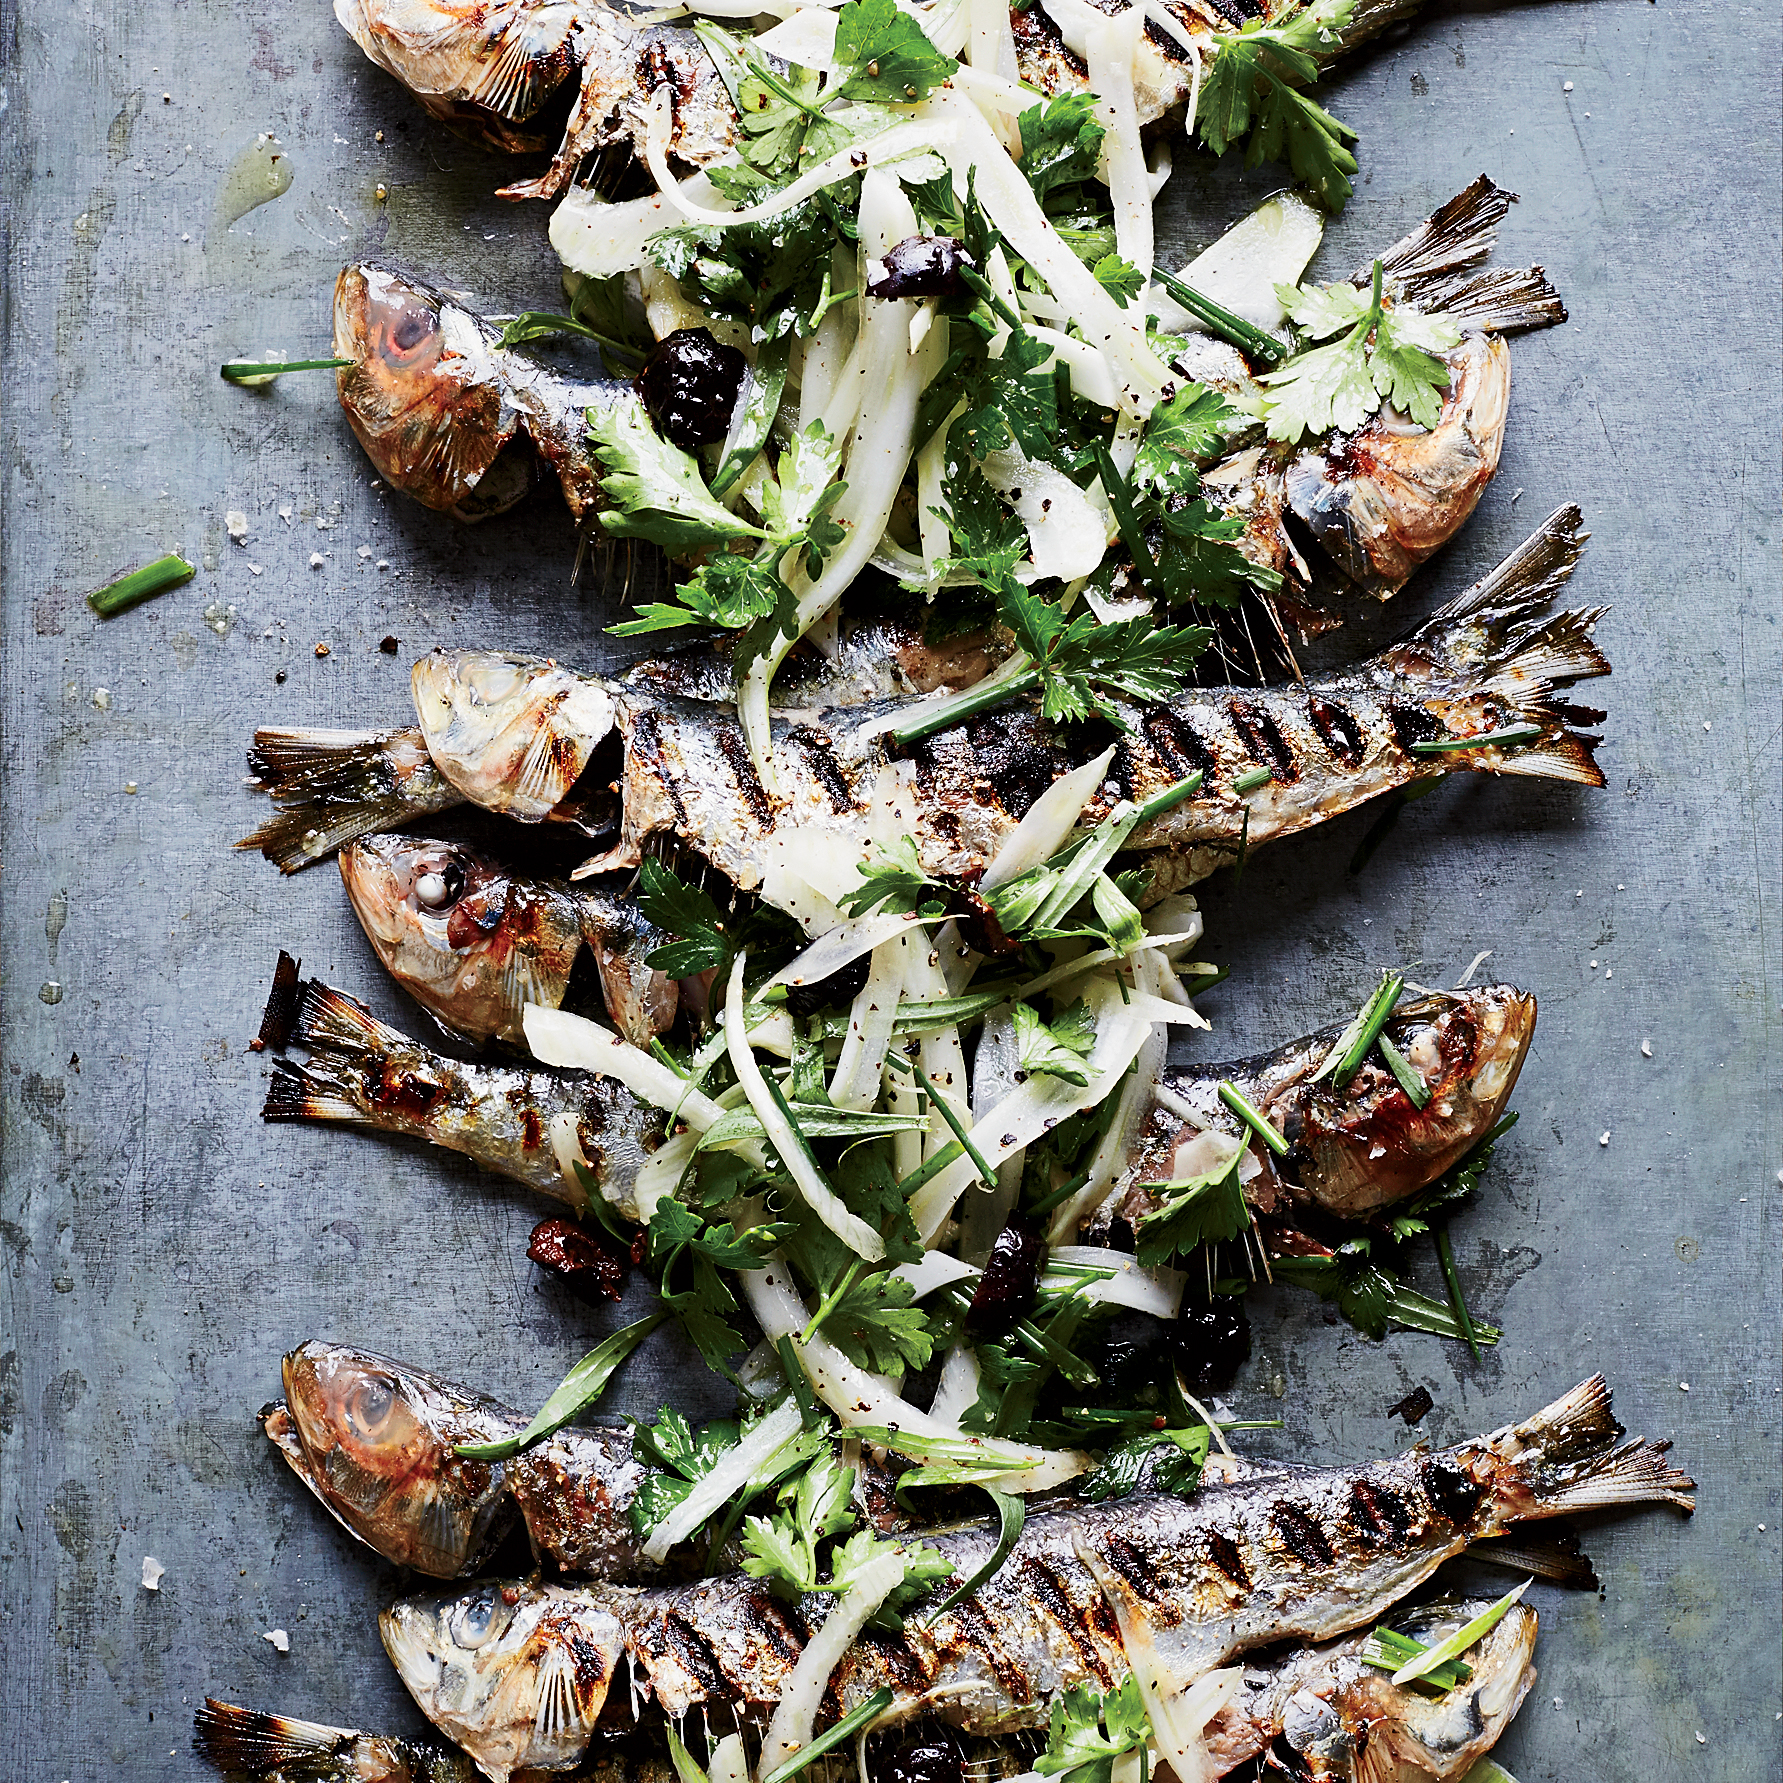 May 22: Grilled Sardines with Herbed Fennel-and-Olive Salad